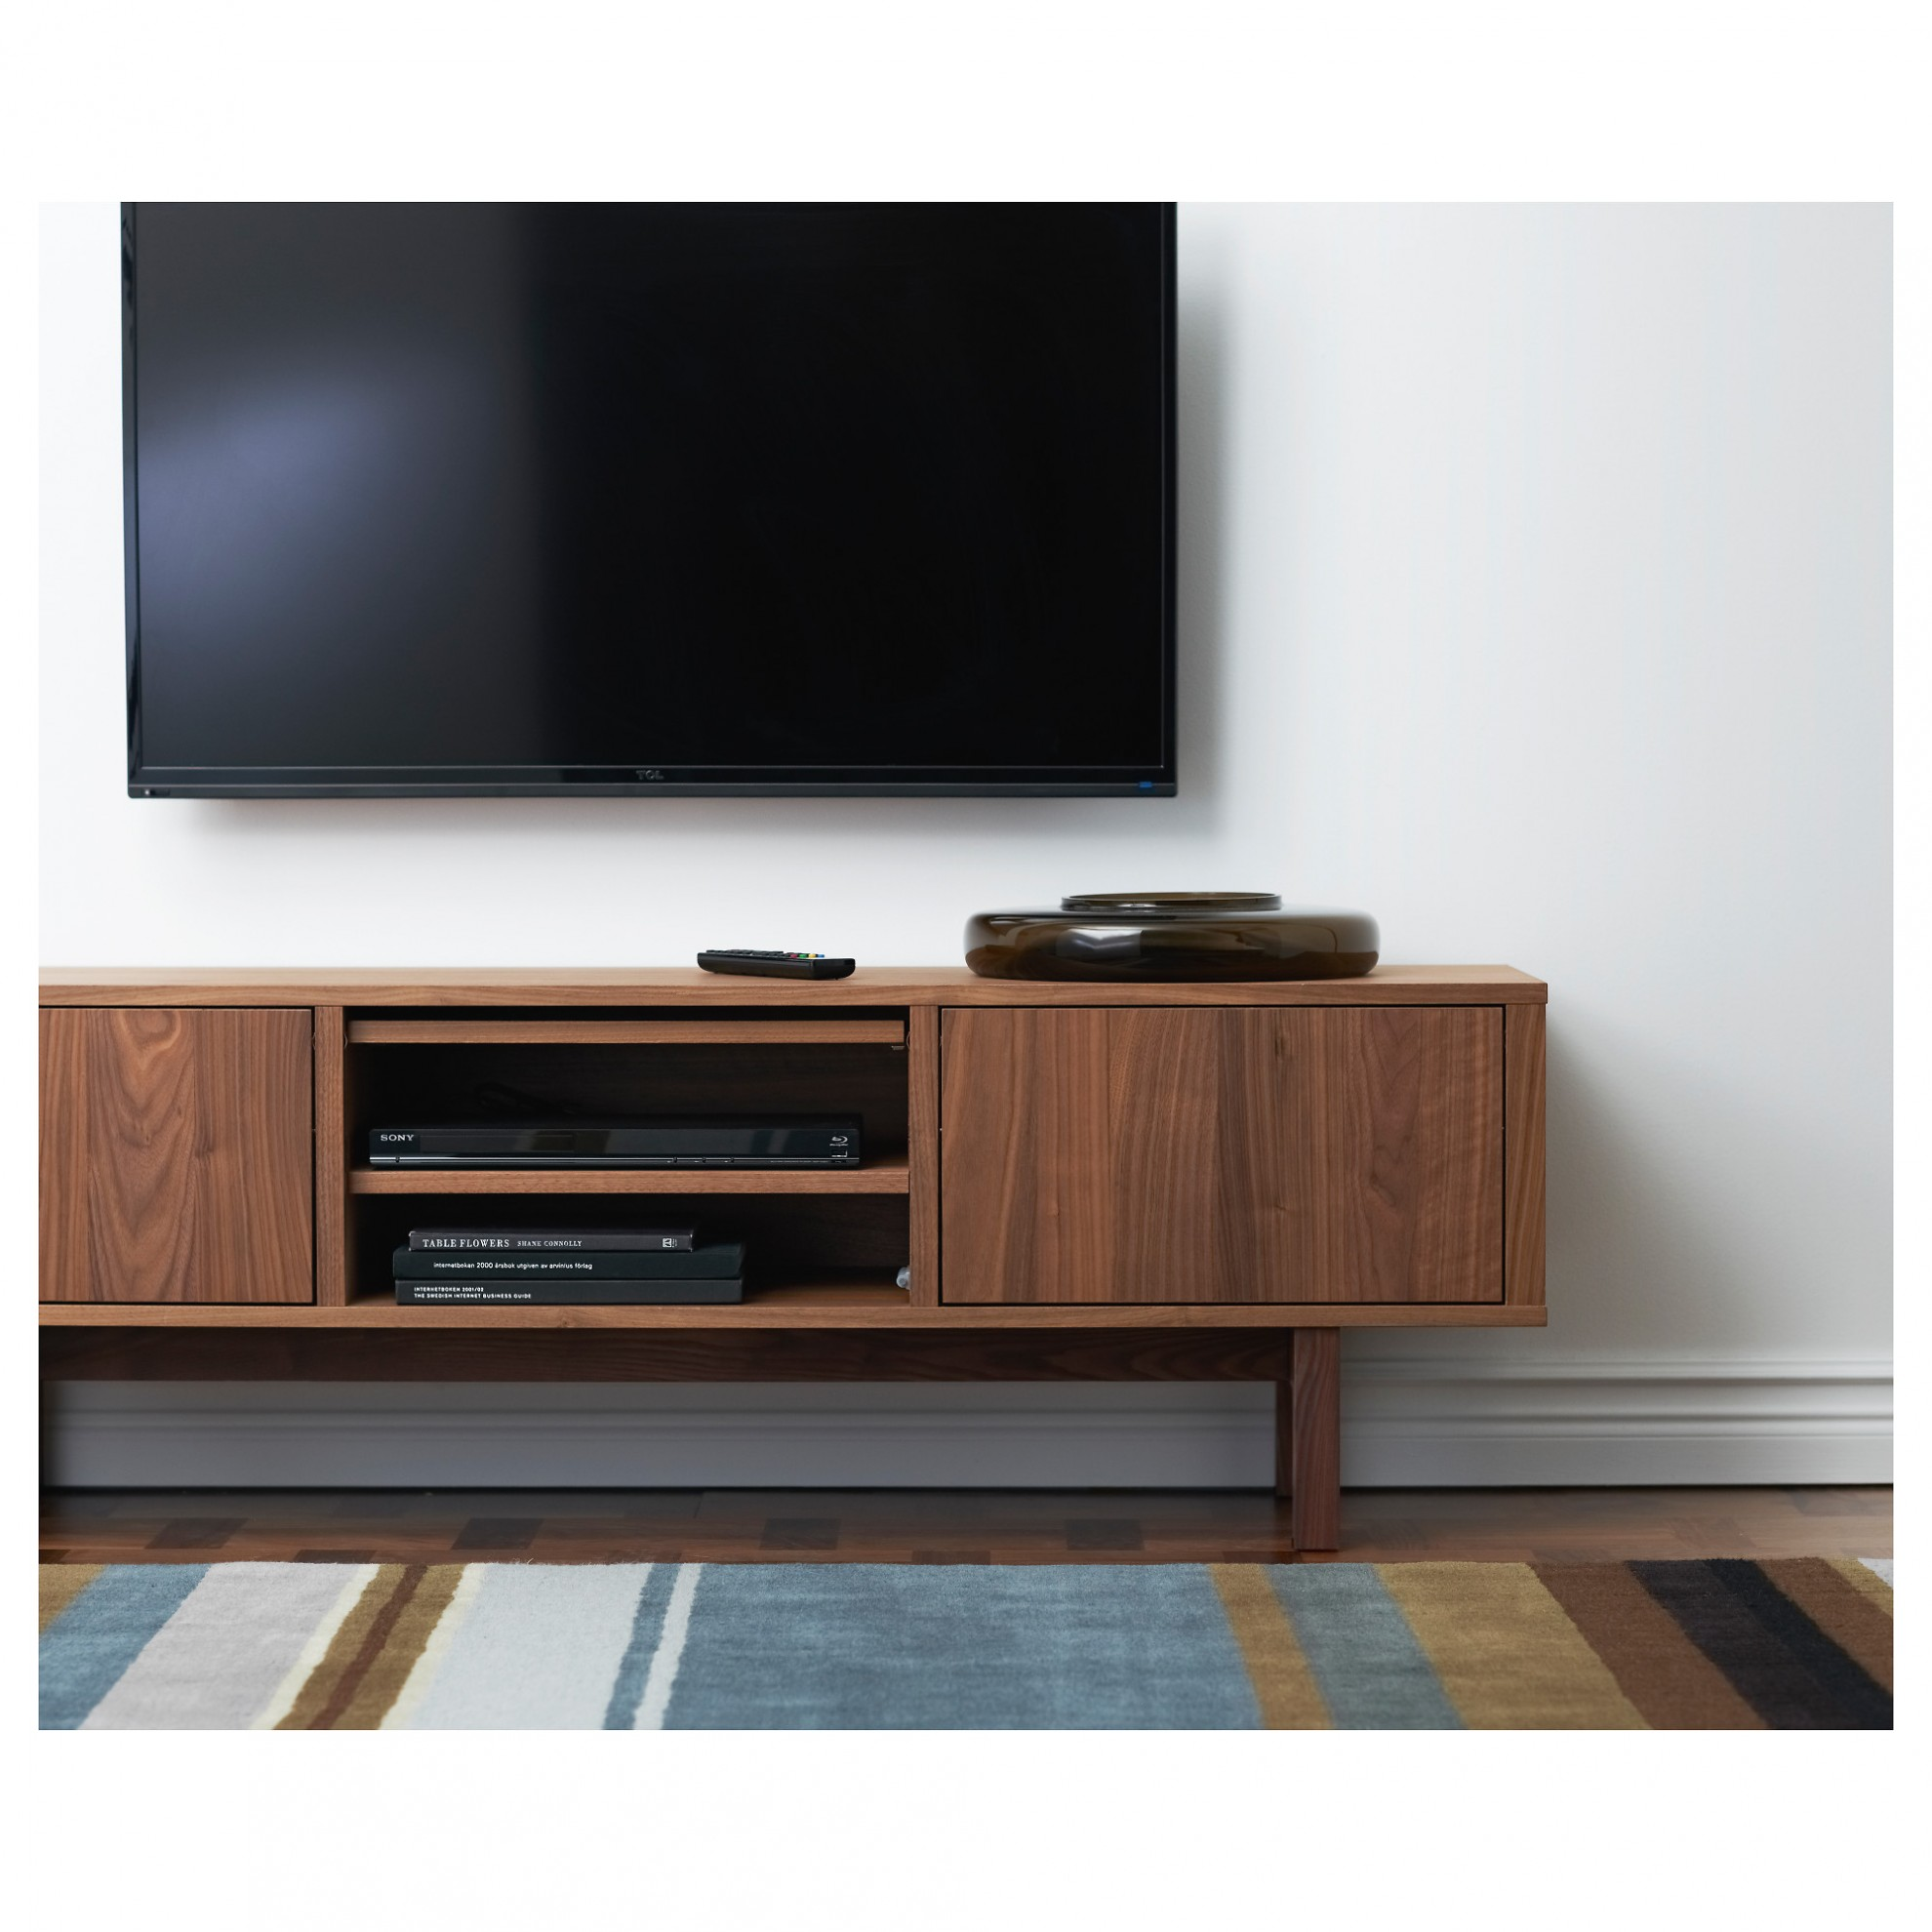 Spectral Audio Möbel Mobel Tv Trendy Tv Stand Glass Tray Spectral Audio Mbel Gmbh With